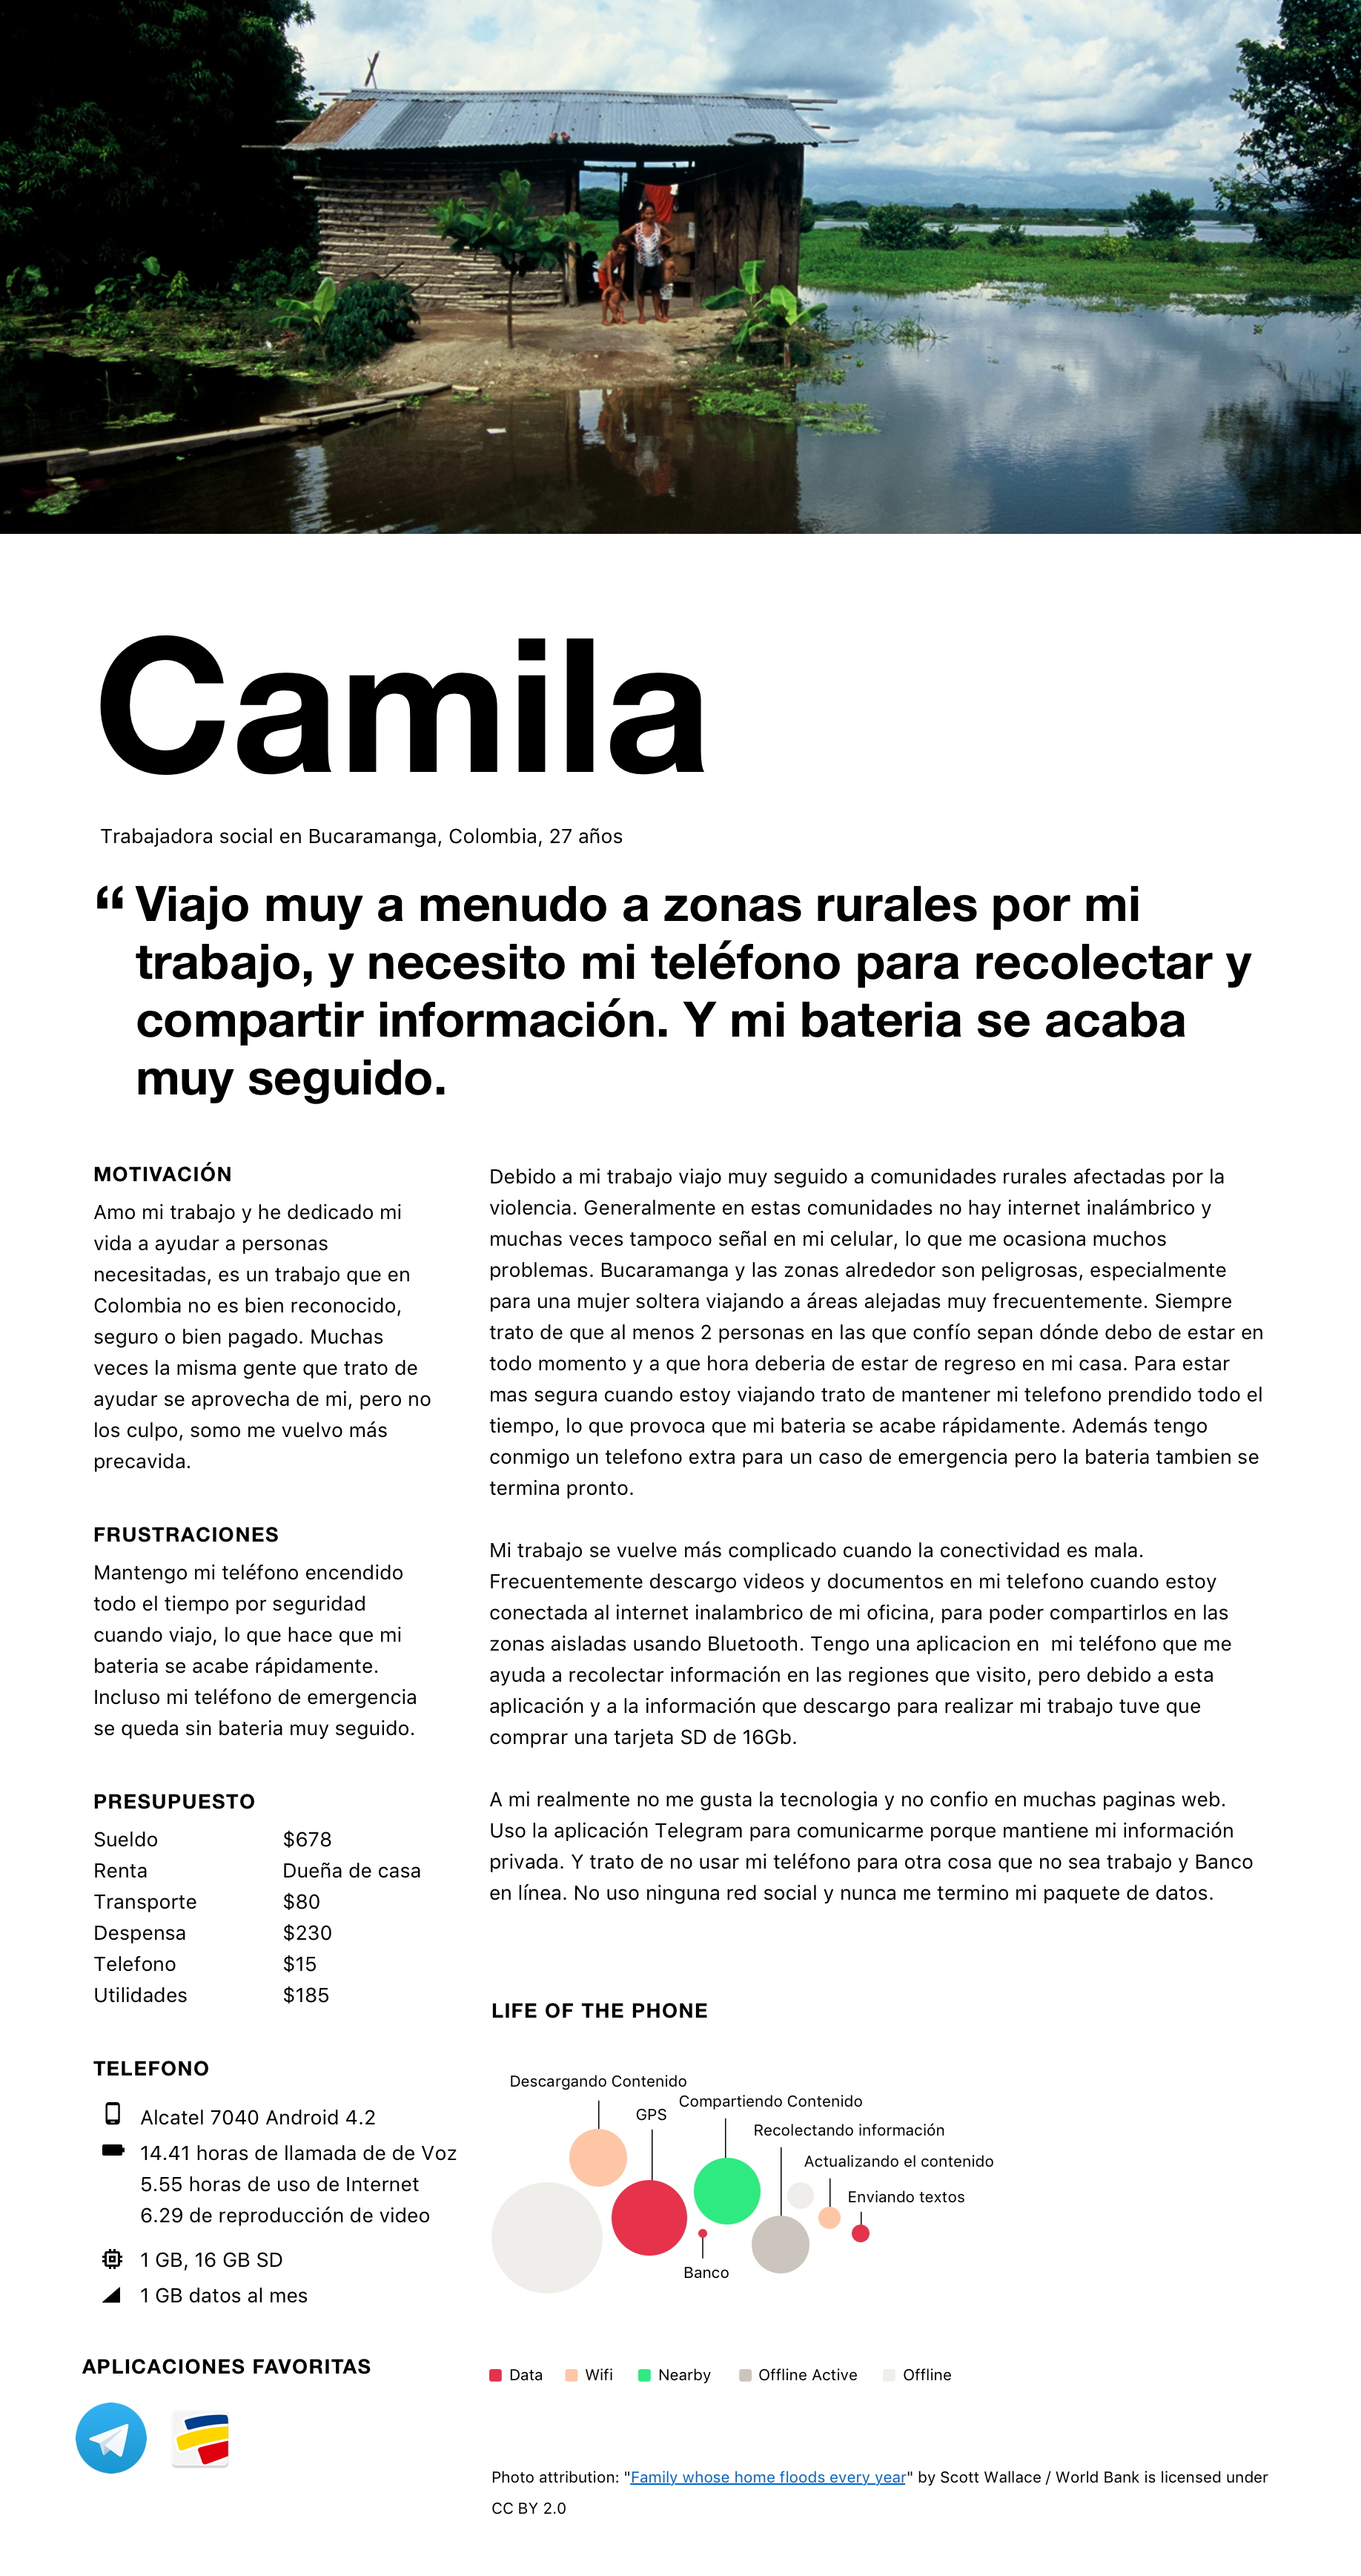 ux-persona-colombia-Camila@3x.png